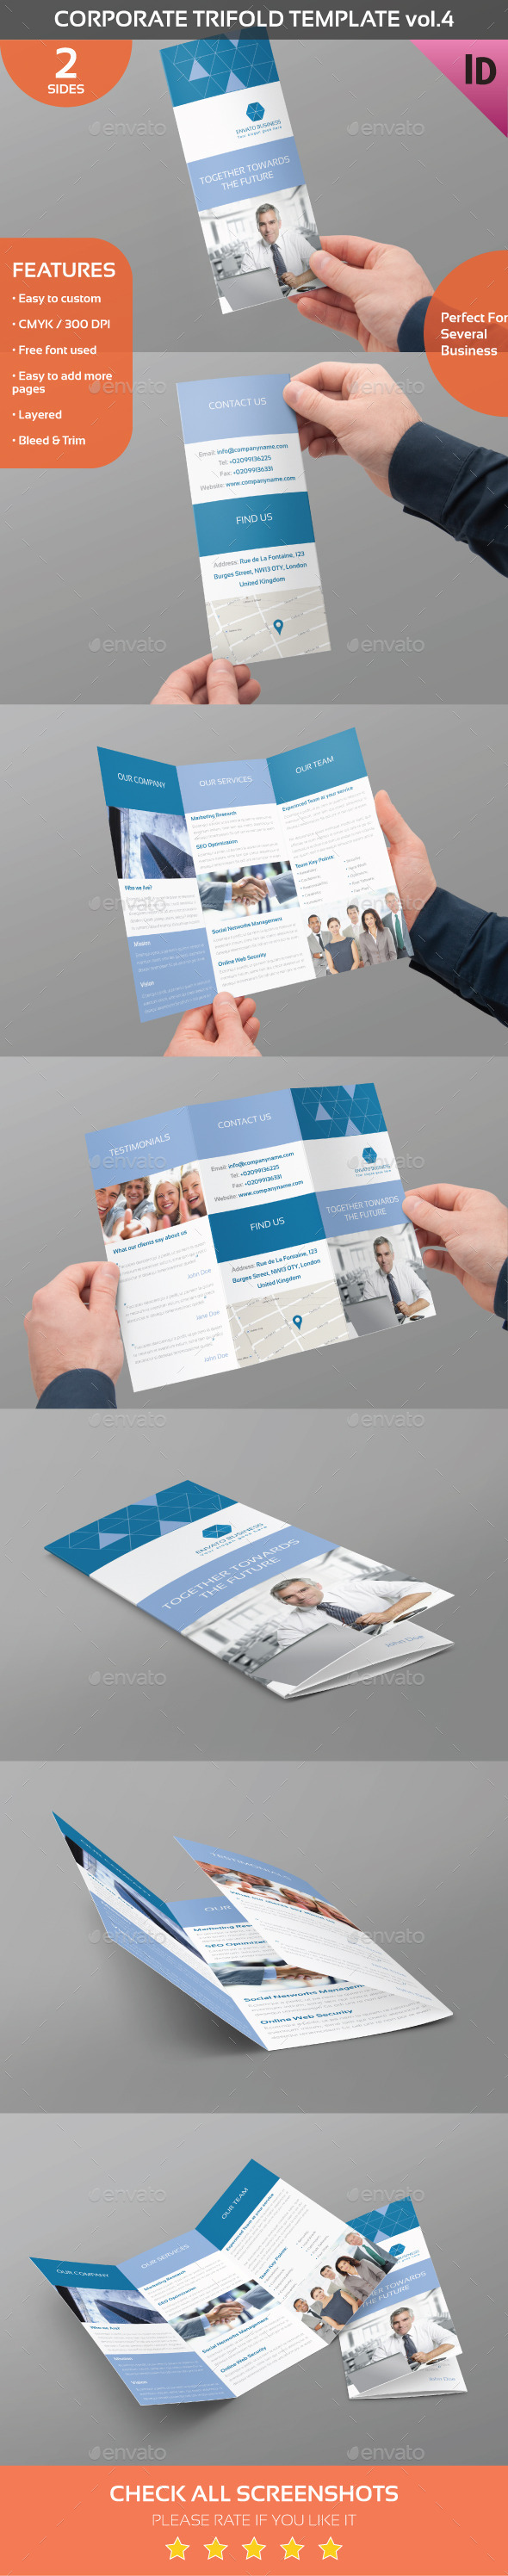 GraphicRiver Corporate Trifold Template Vol.4 10093893